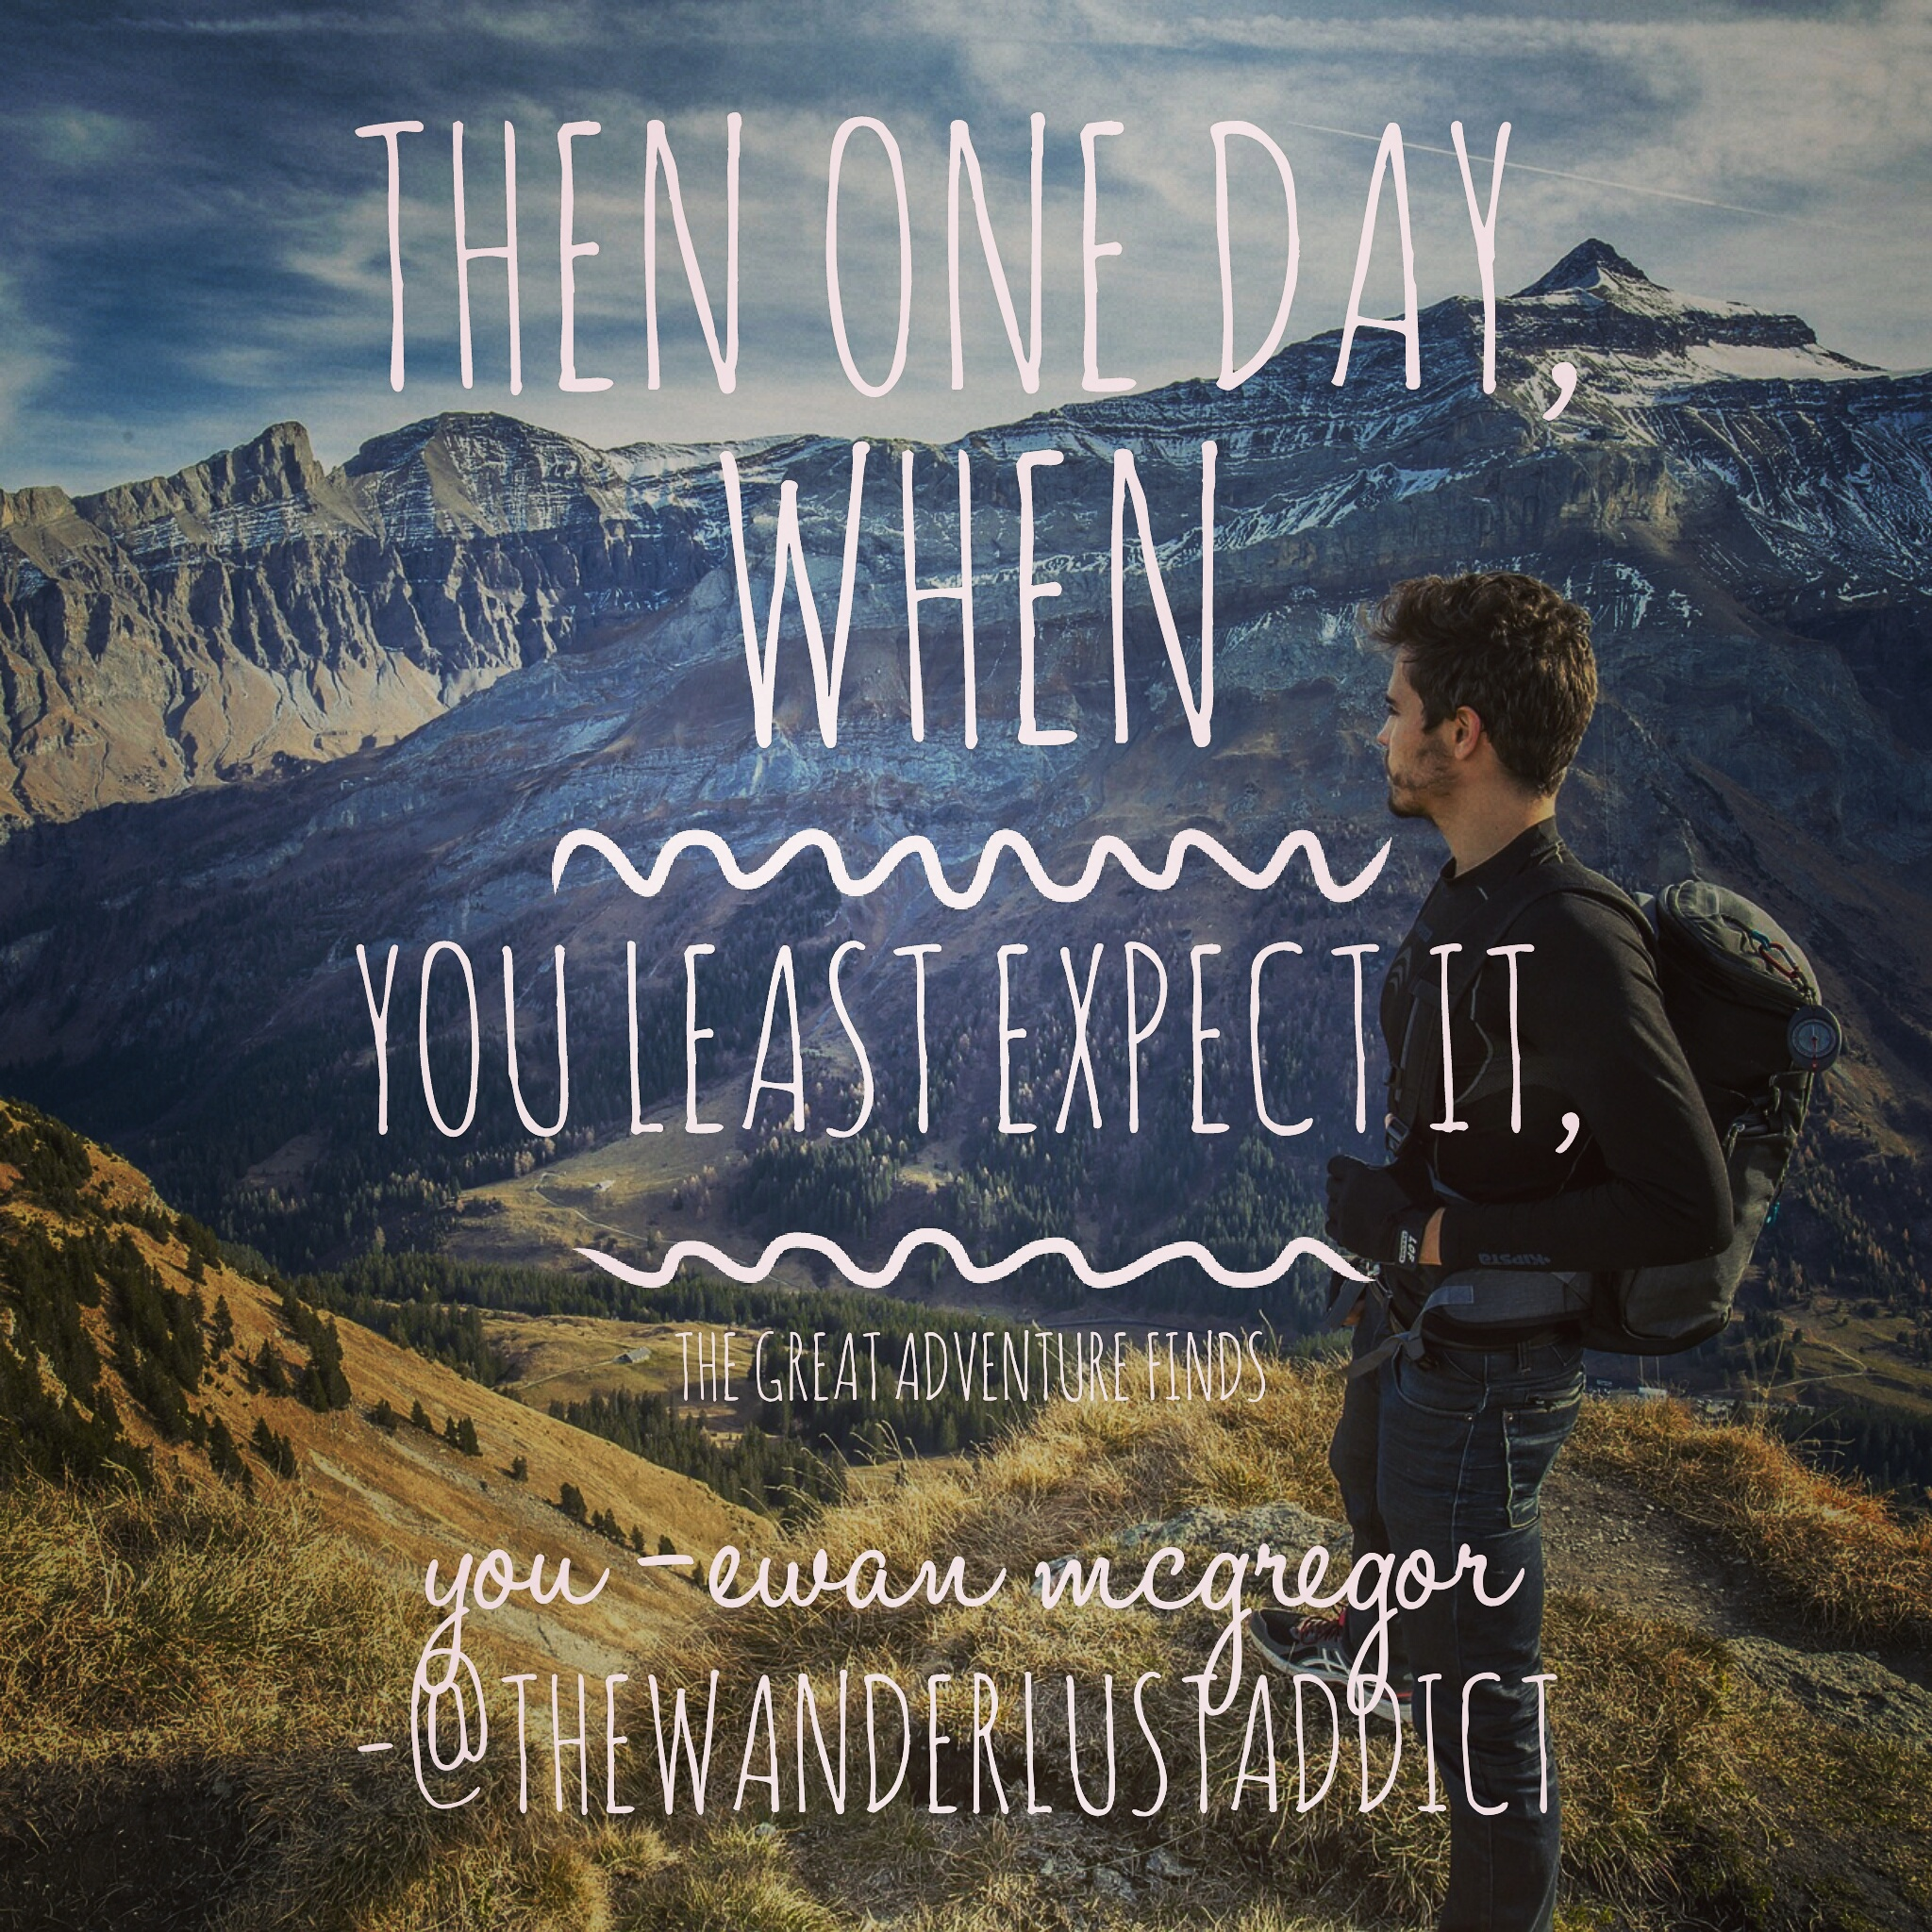 Then one day,when you least expect it, the great adventure find you